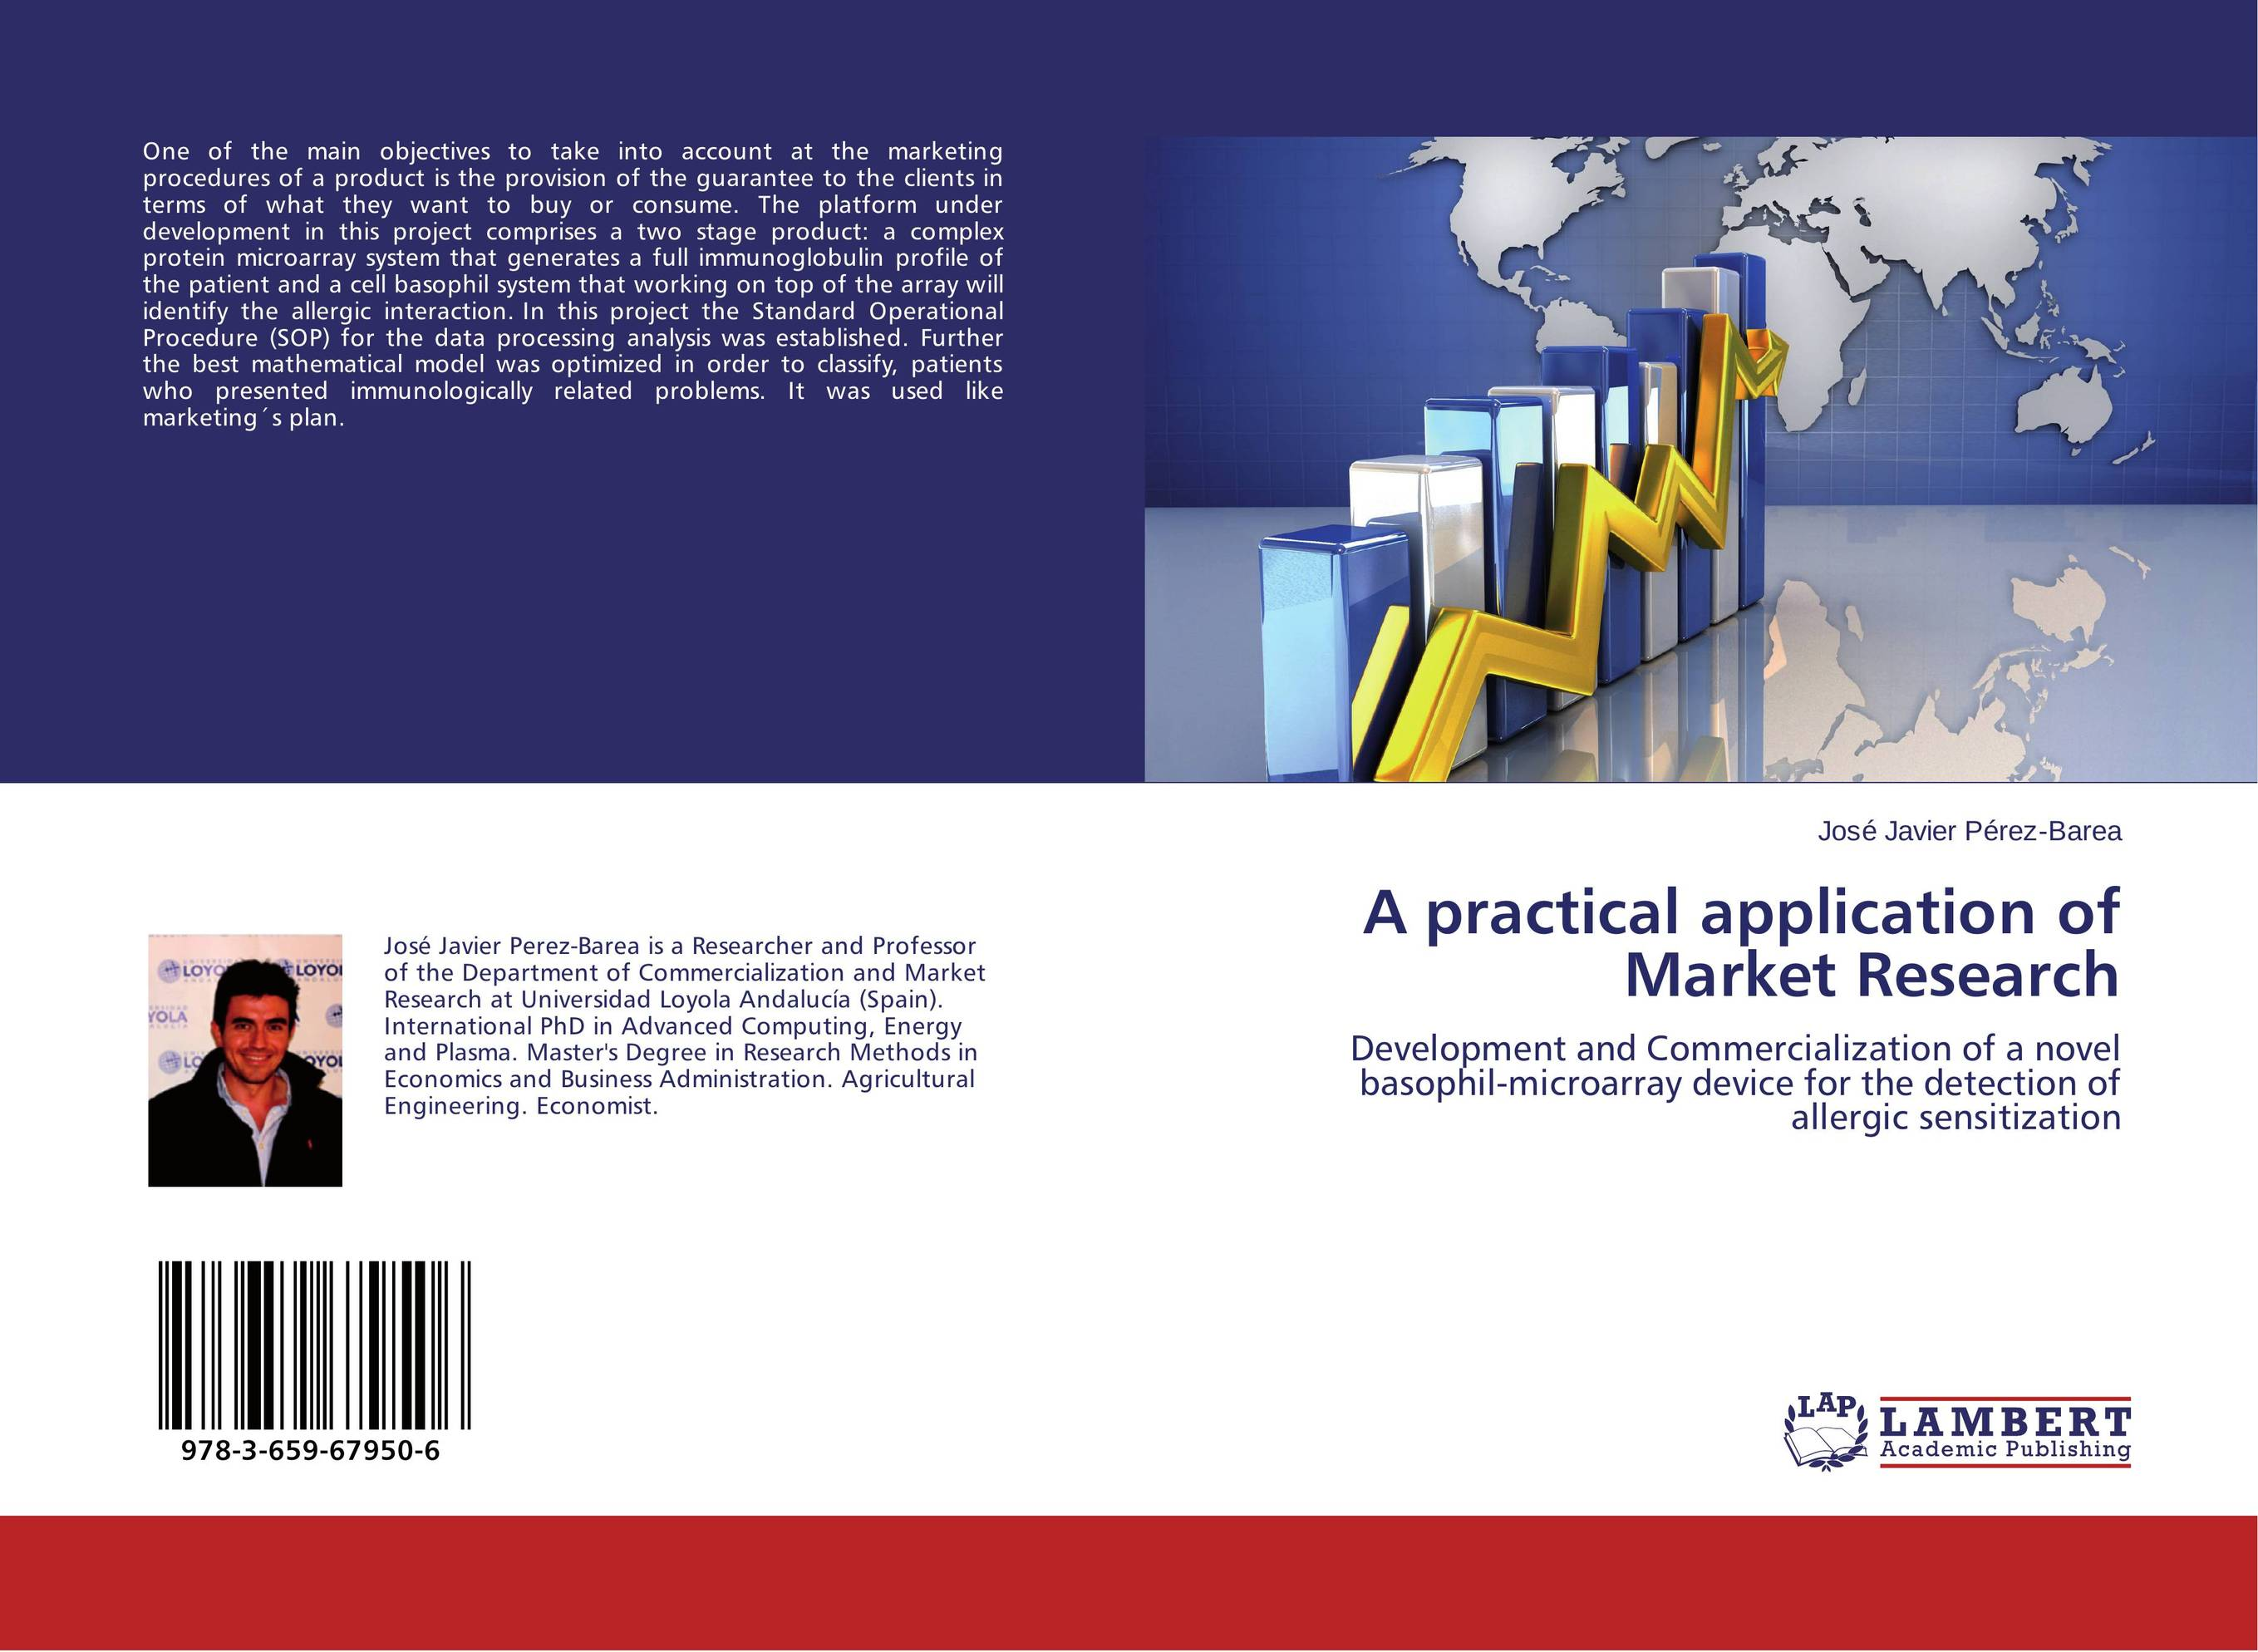 A practical application of Market Research